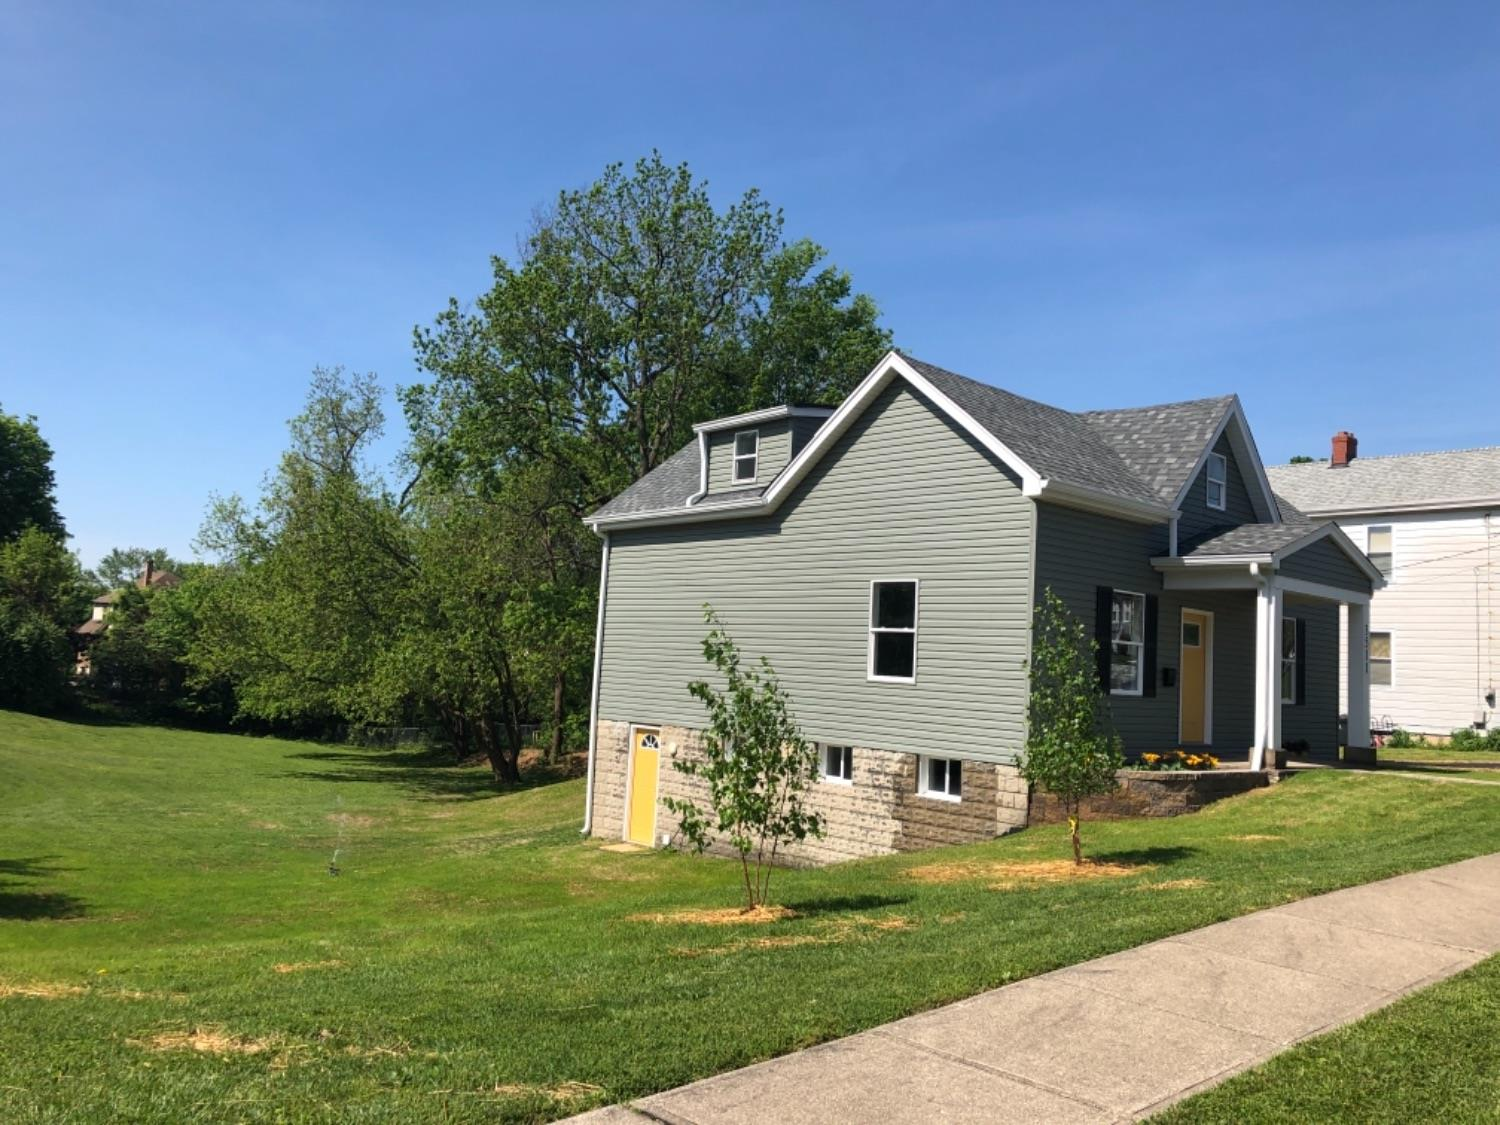 Photo 3 for 3511 Mozart Ave Cheviot, OH 45211